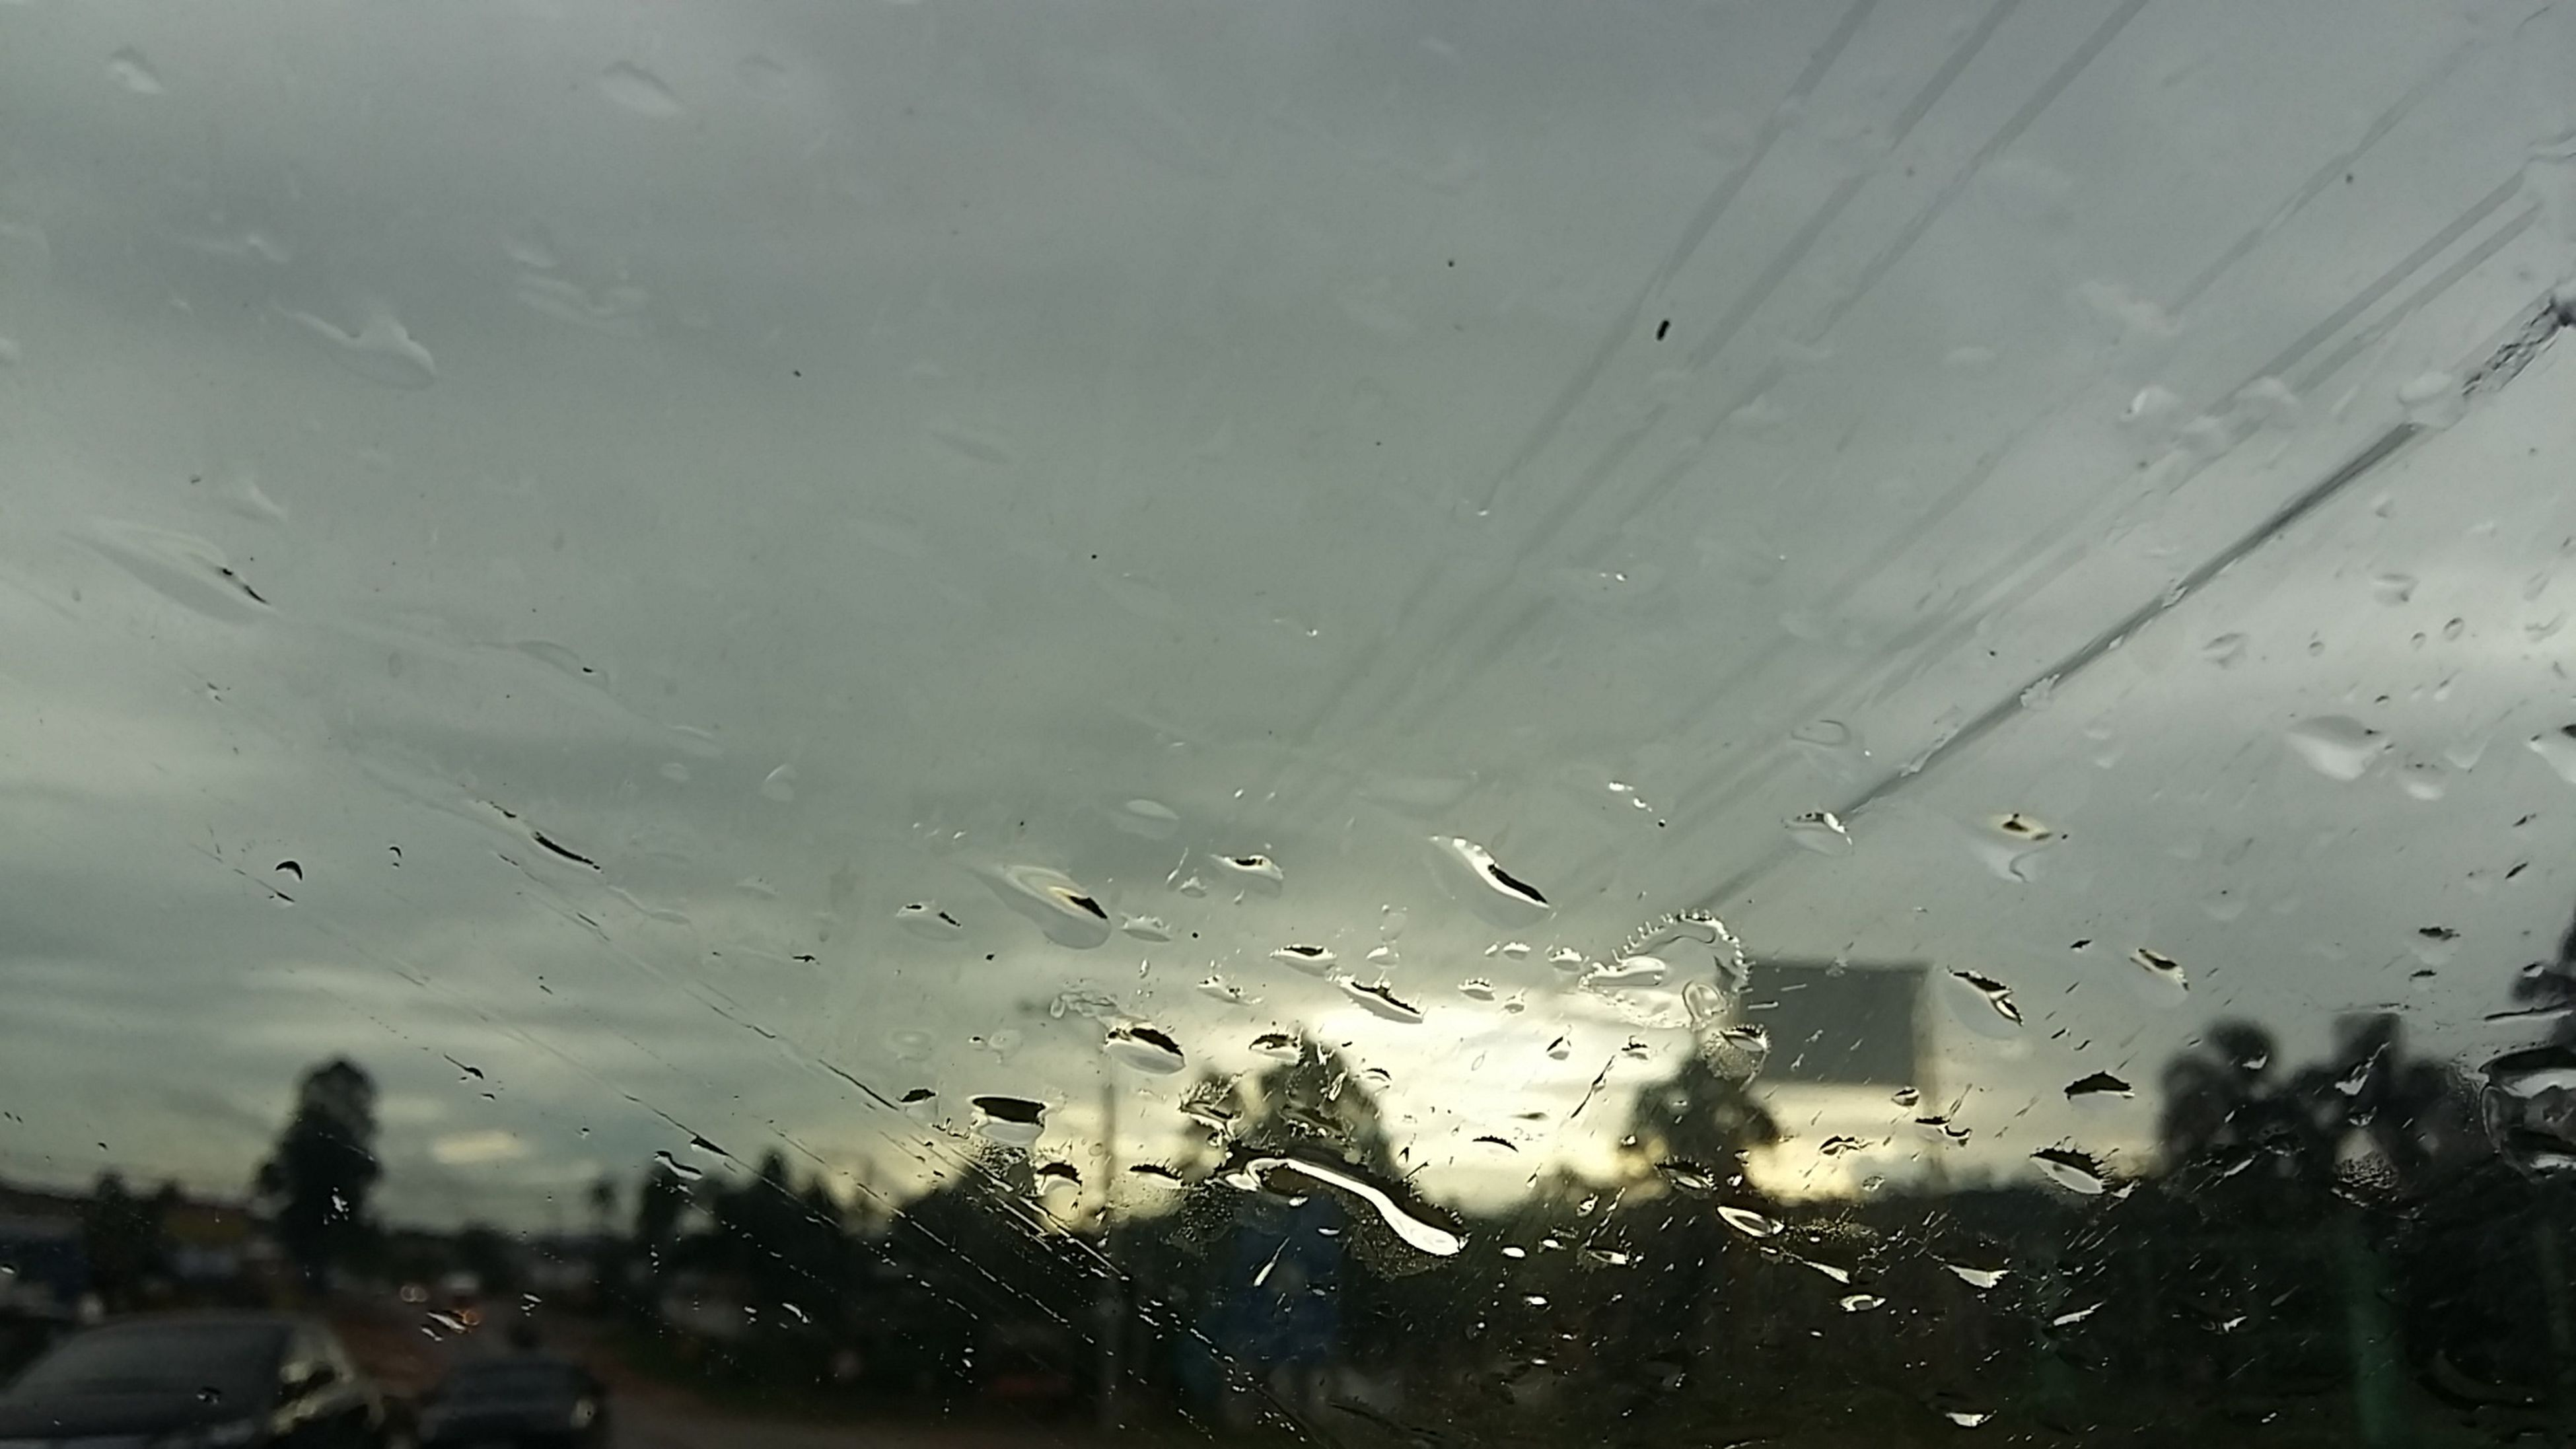 drop, wet, window, rain, transparent, glass - material, water, car, transportation, indoors, weather, raindrop, season, land vehicle, mode of transport, sky, vehicle interior, glass, monsoon, road